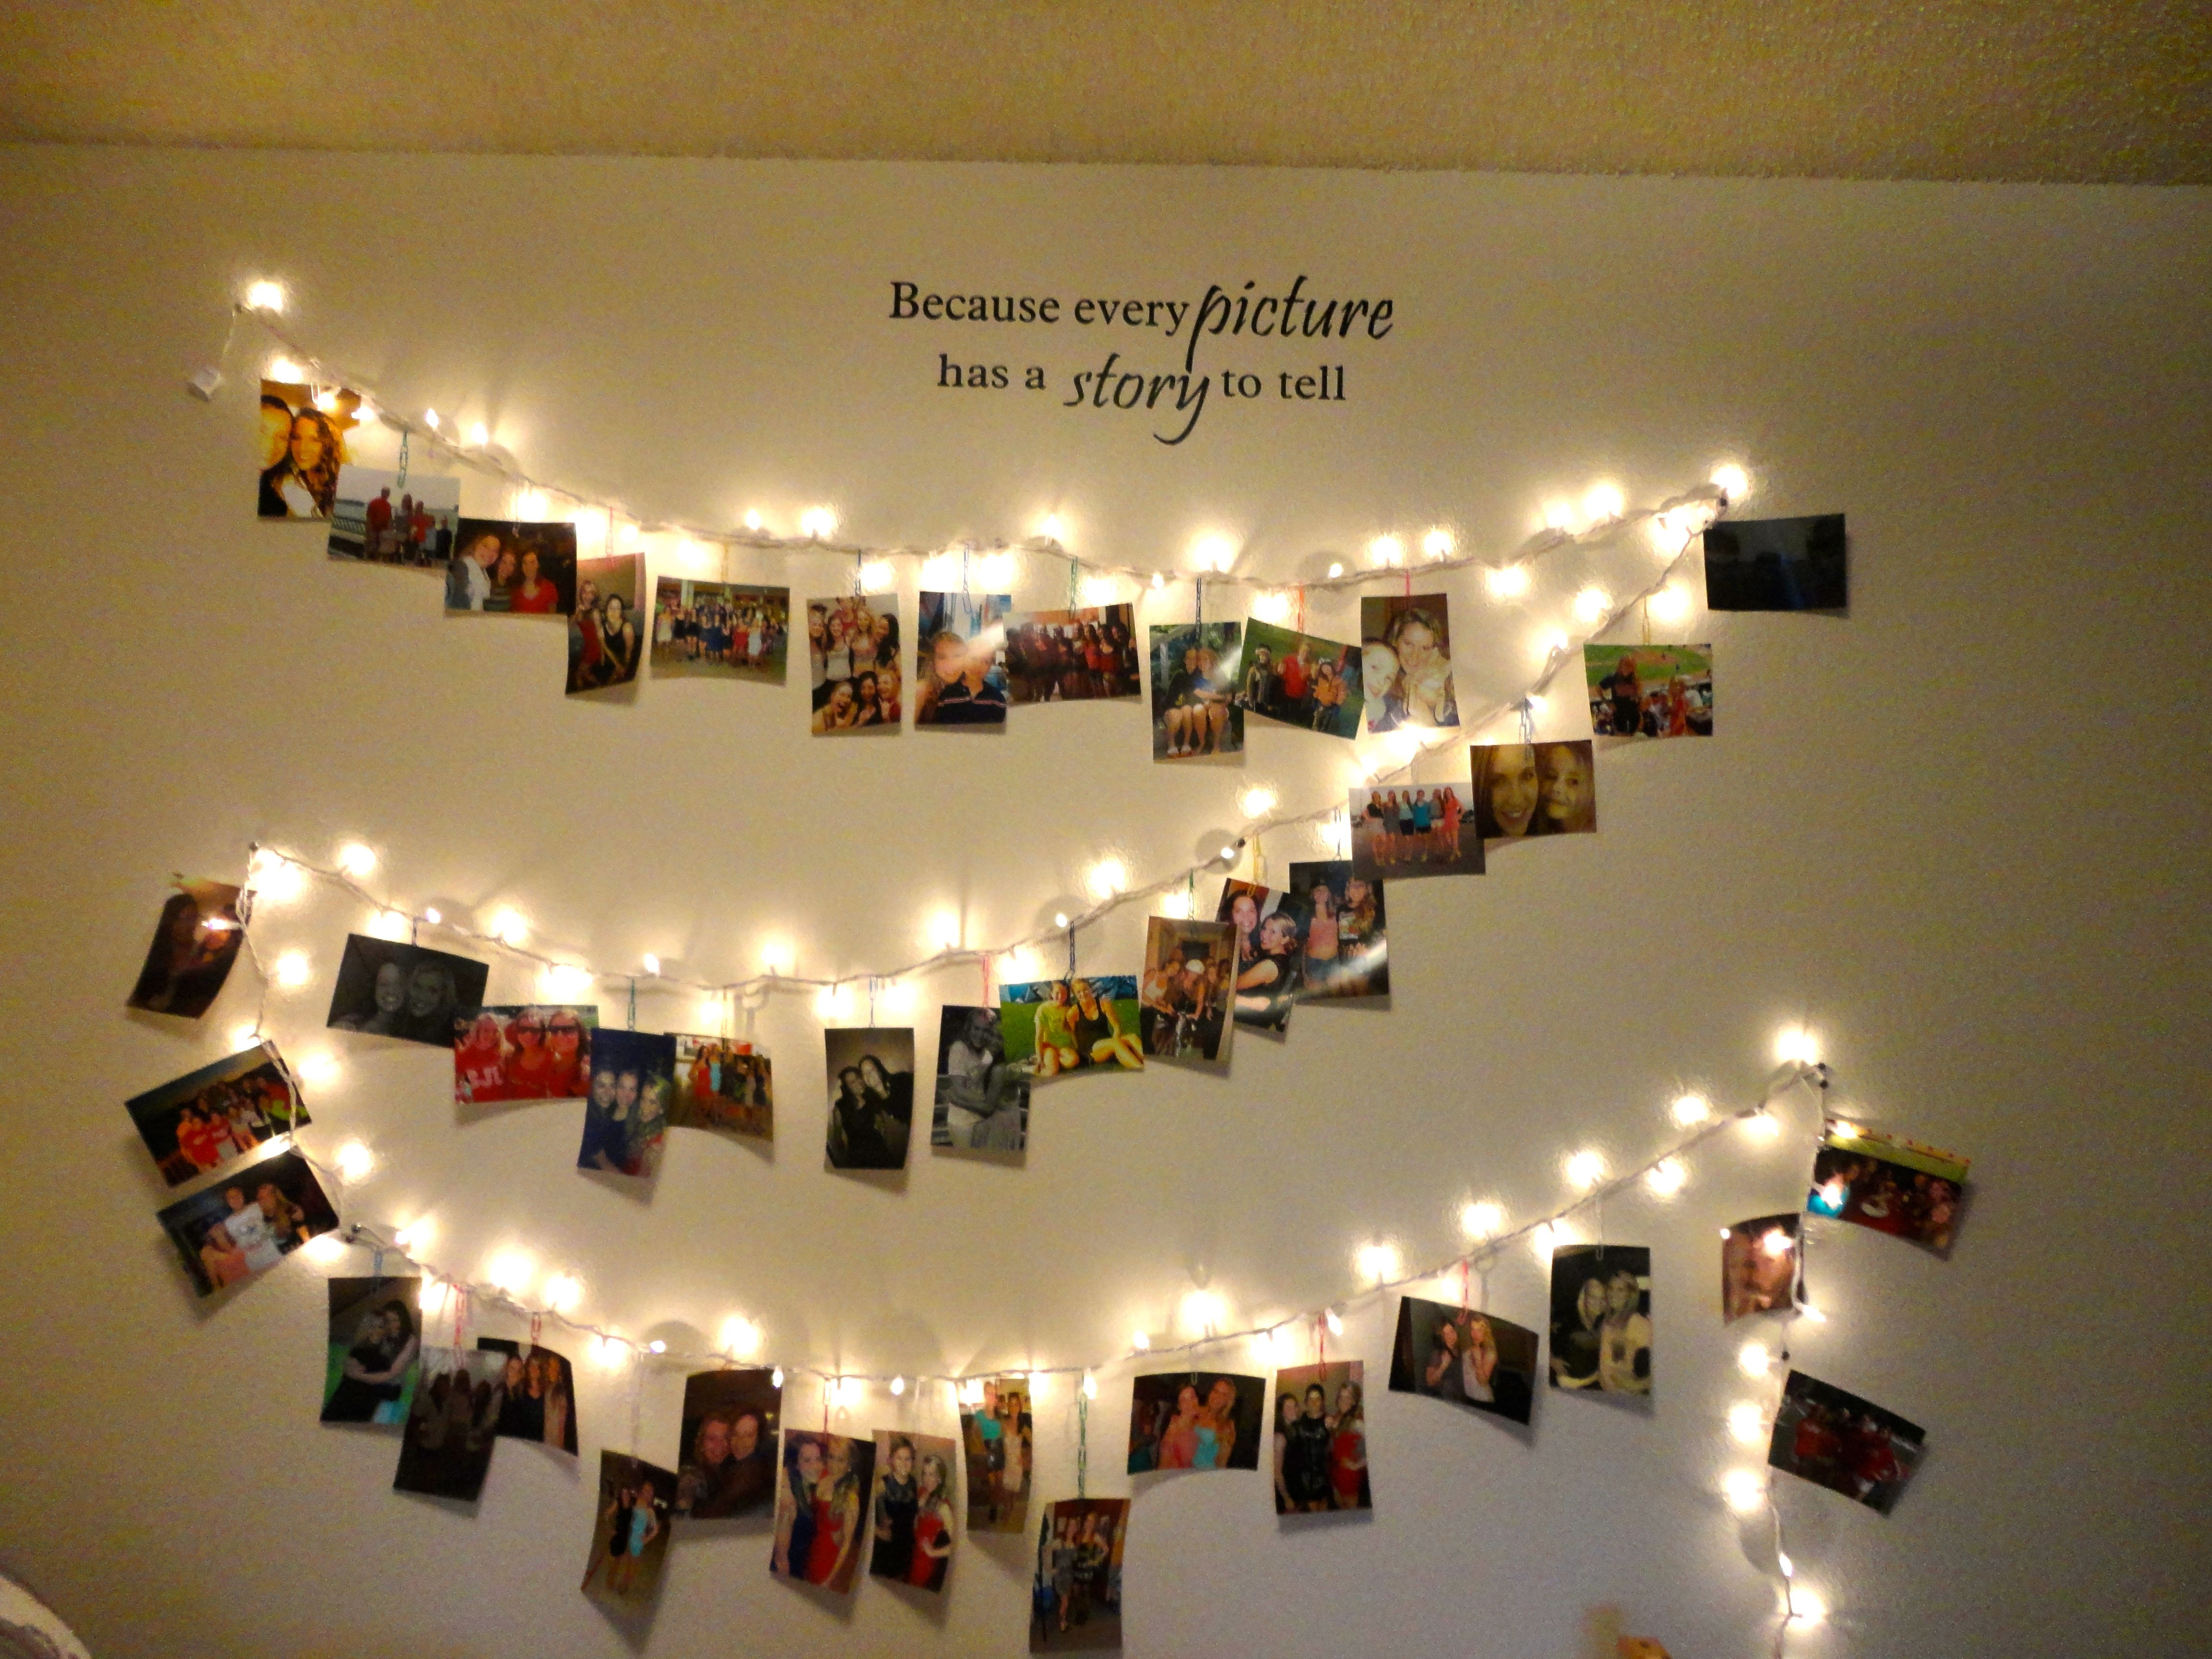 Cute And Easy Way To Dress Up Your Room! All You Need Is Pictures, Part 53